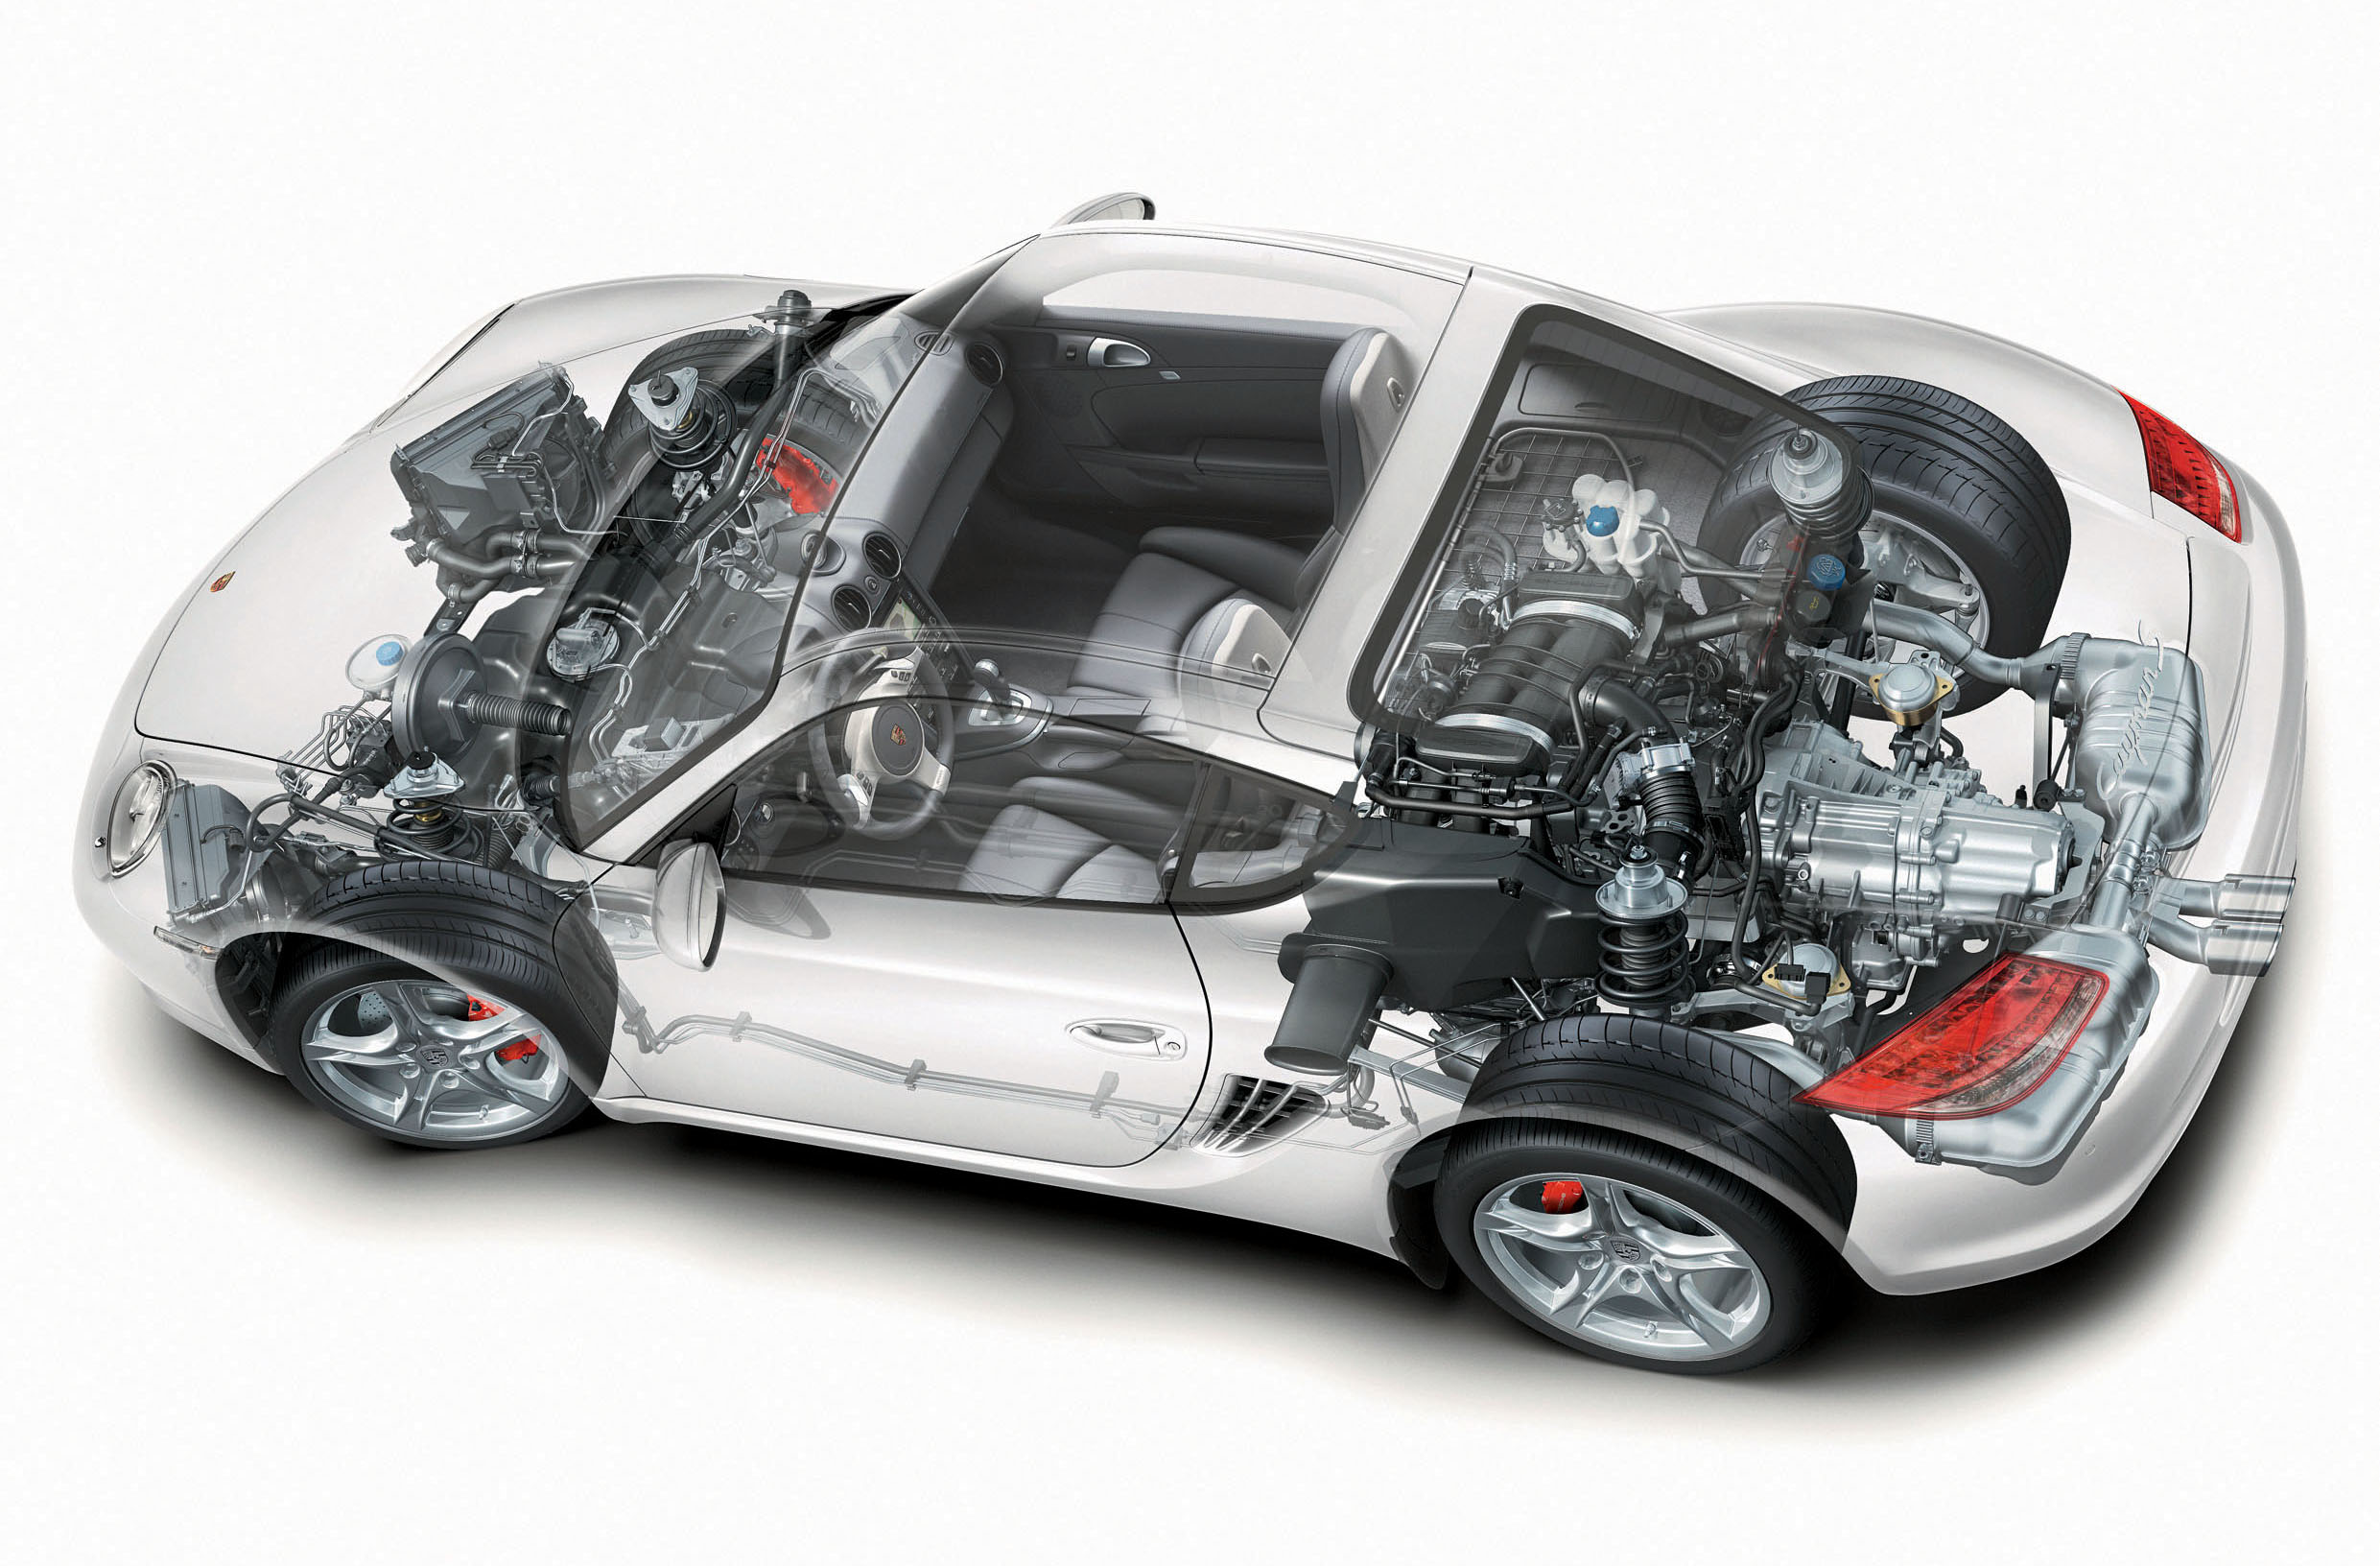 Indexhtm Like This Here Is The Porsche Wiring Diagram Attached Images